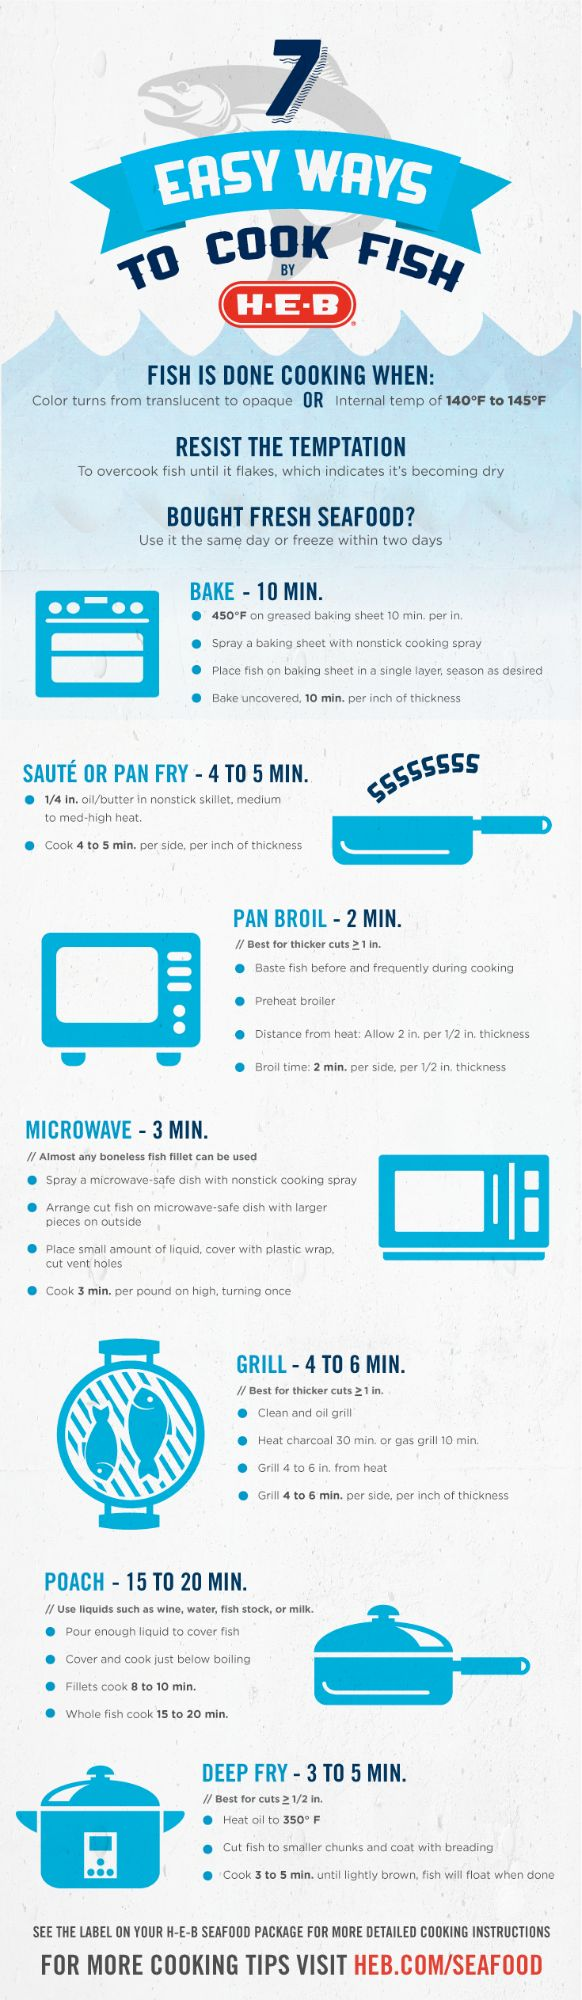 7 Easy Ways To Cook Fish Infographic H E B